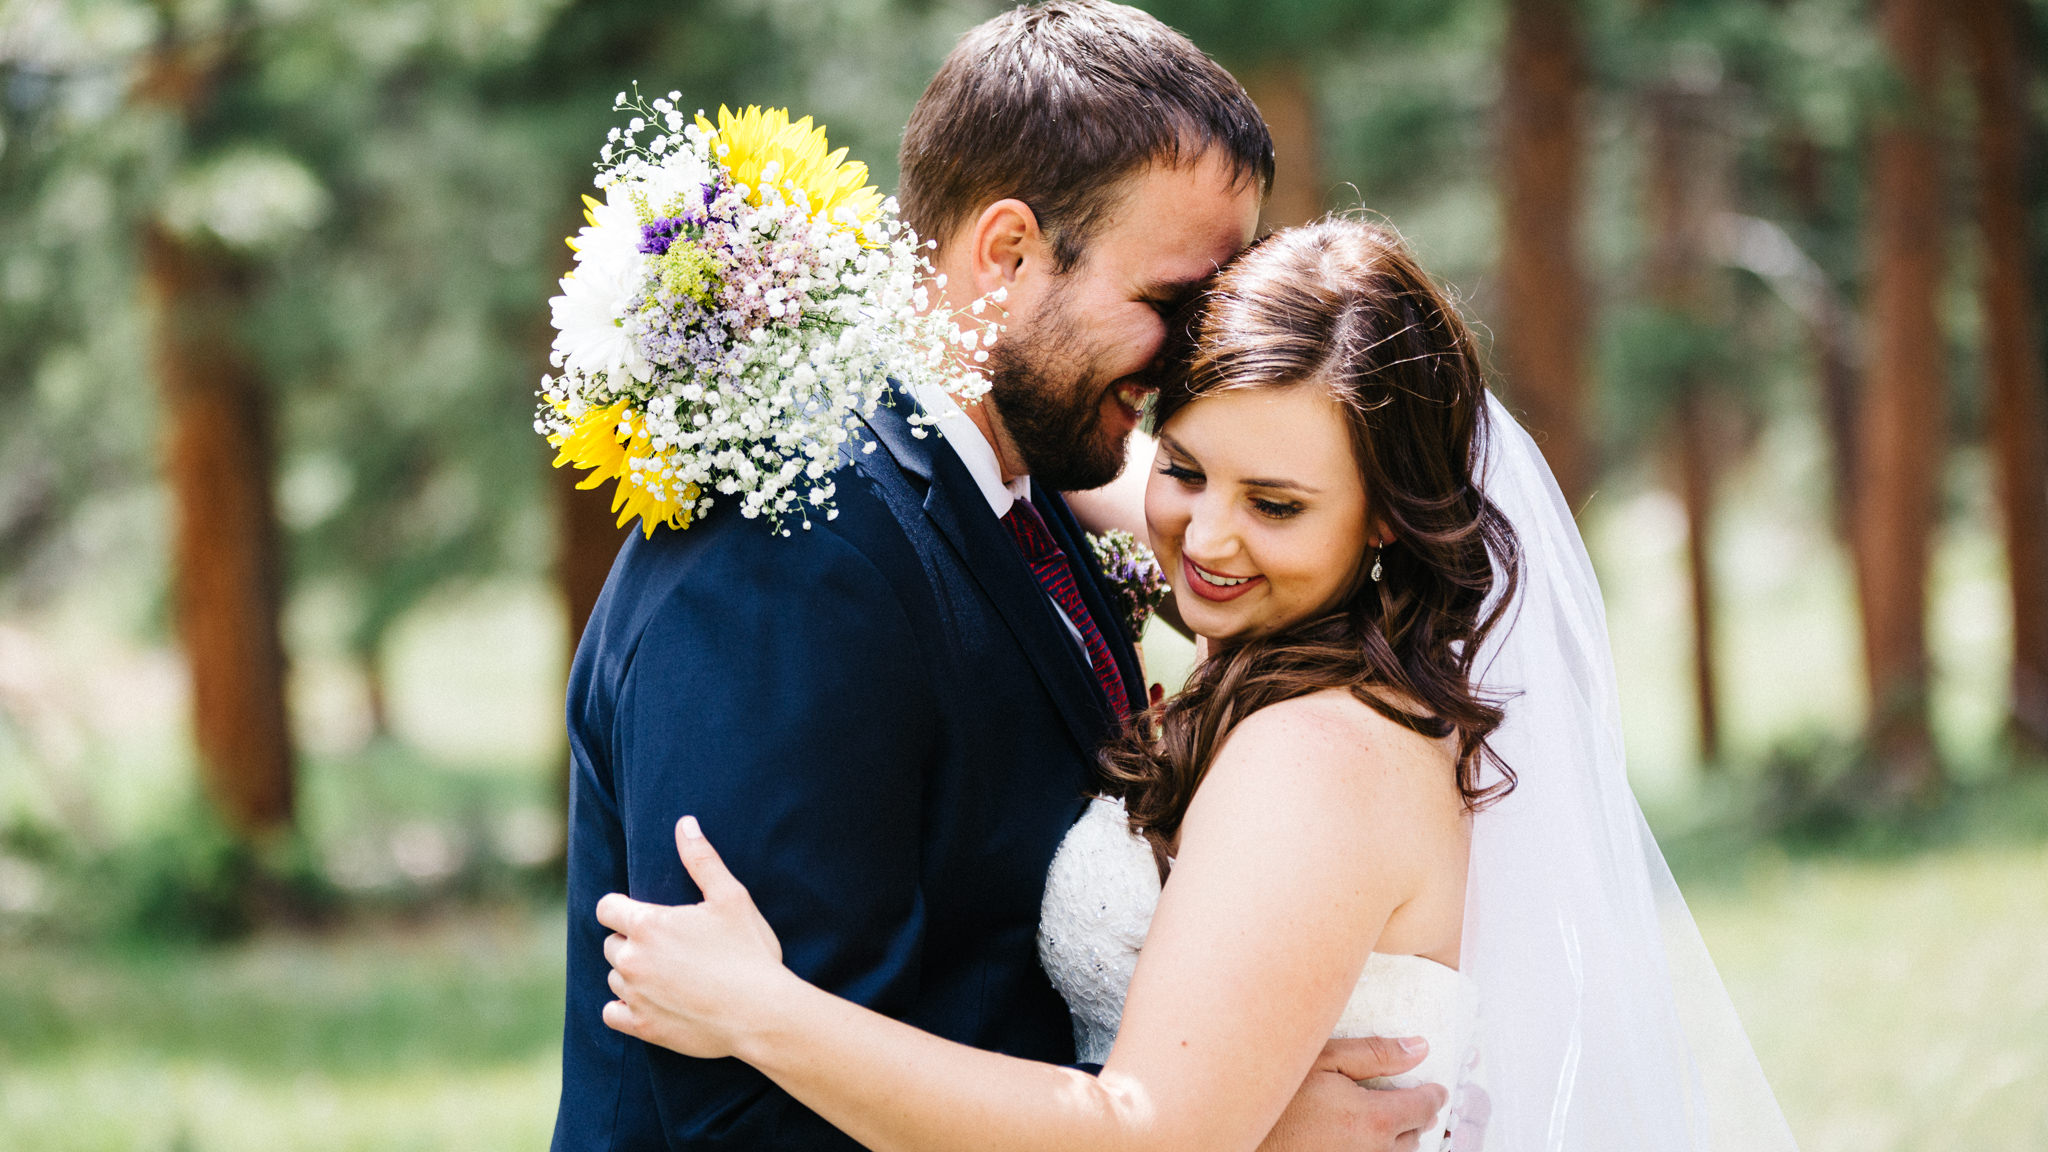 David + Lauren | Estes Park, Colorado | Della Terra